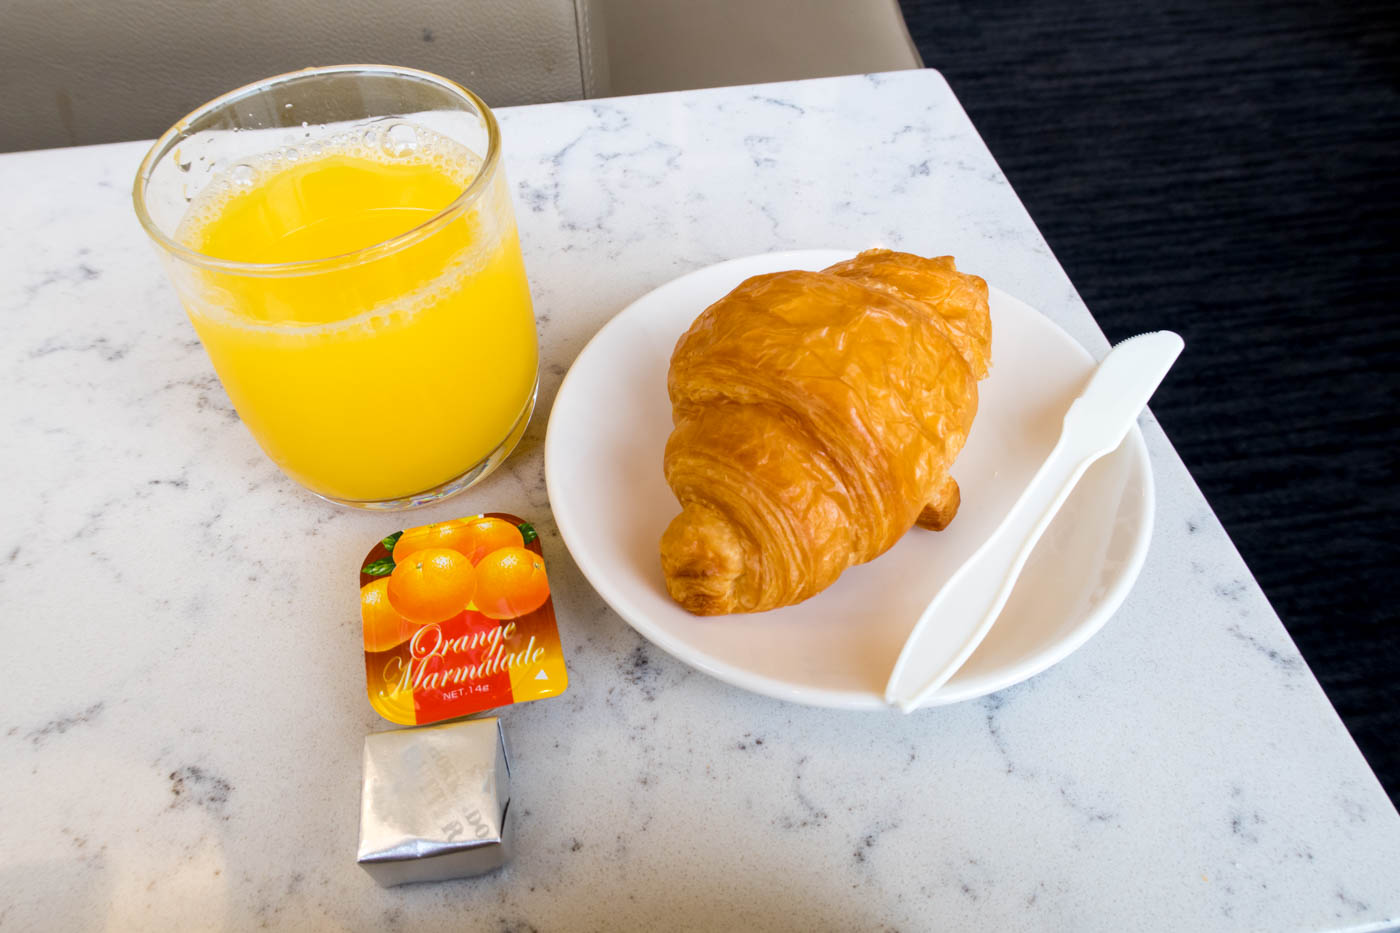 My Breakfast at the United Lounge in Tokyo